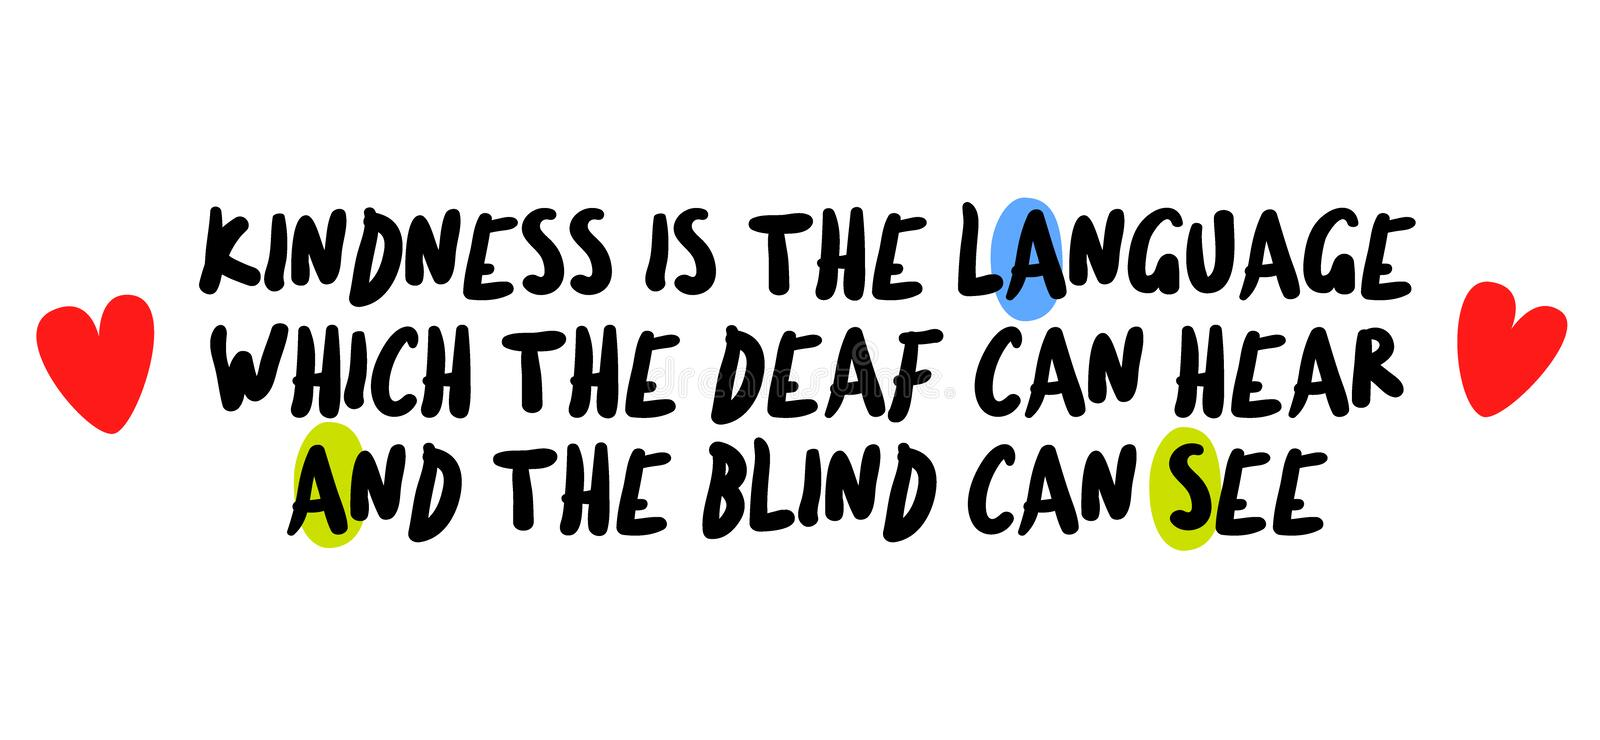 kindness is the language which the deaf can hear and the blind can